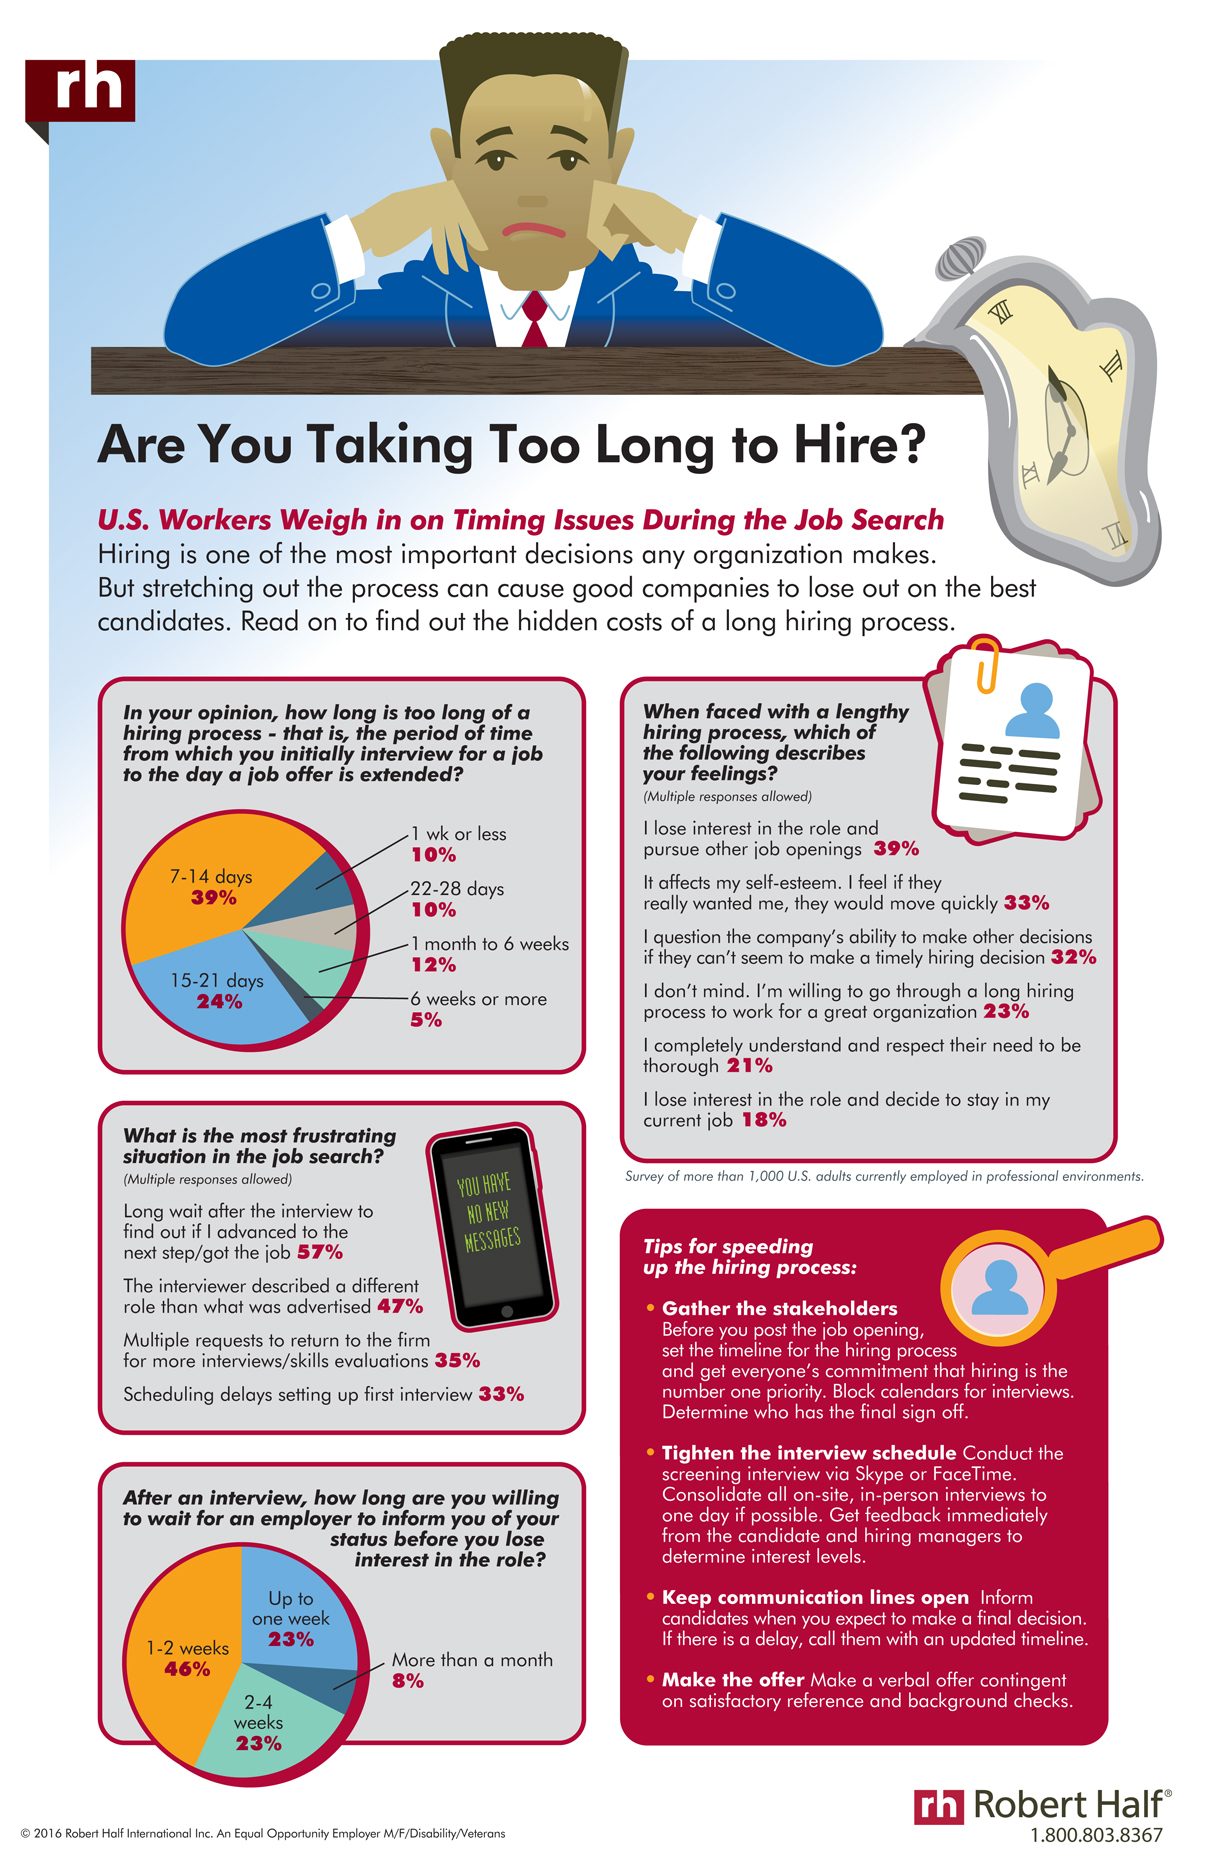 Are You Taking Too Long to Hire infographic